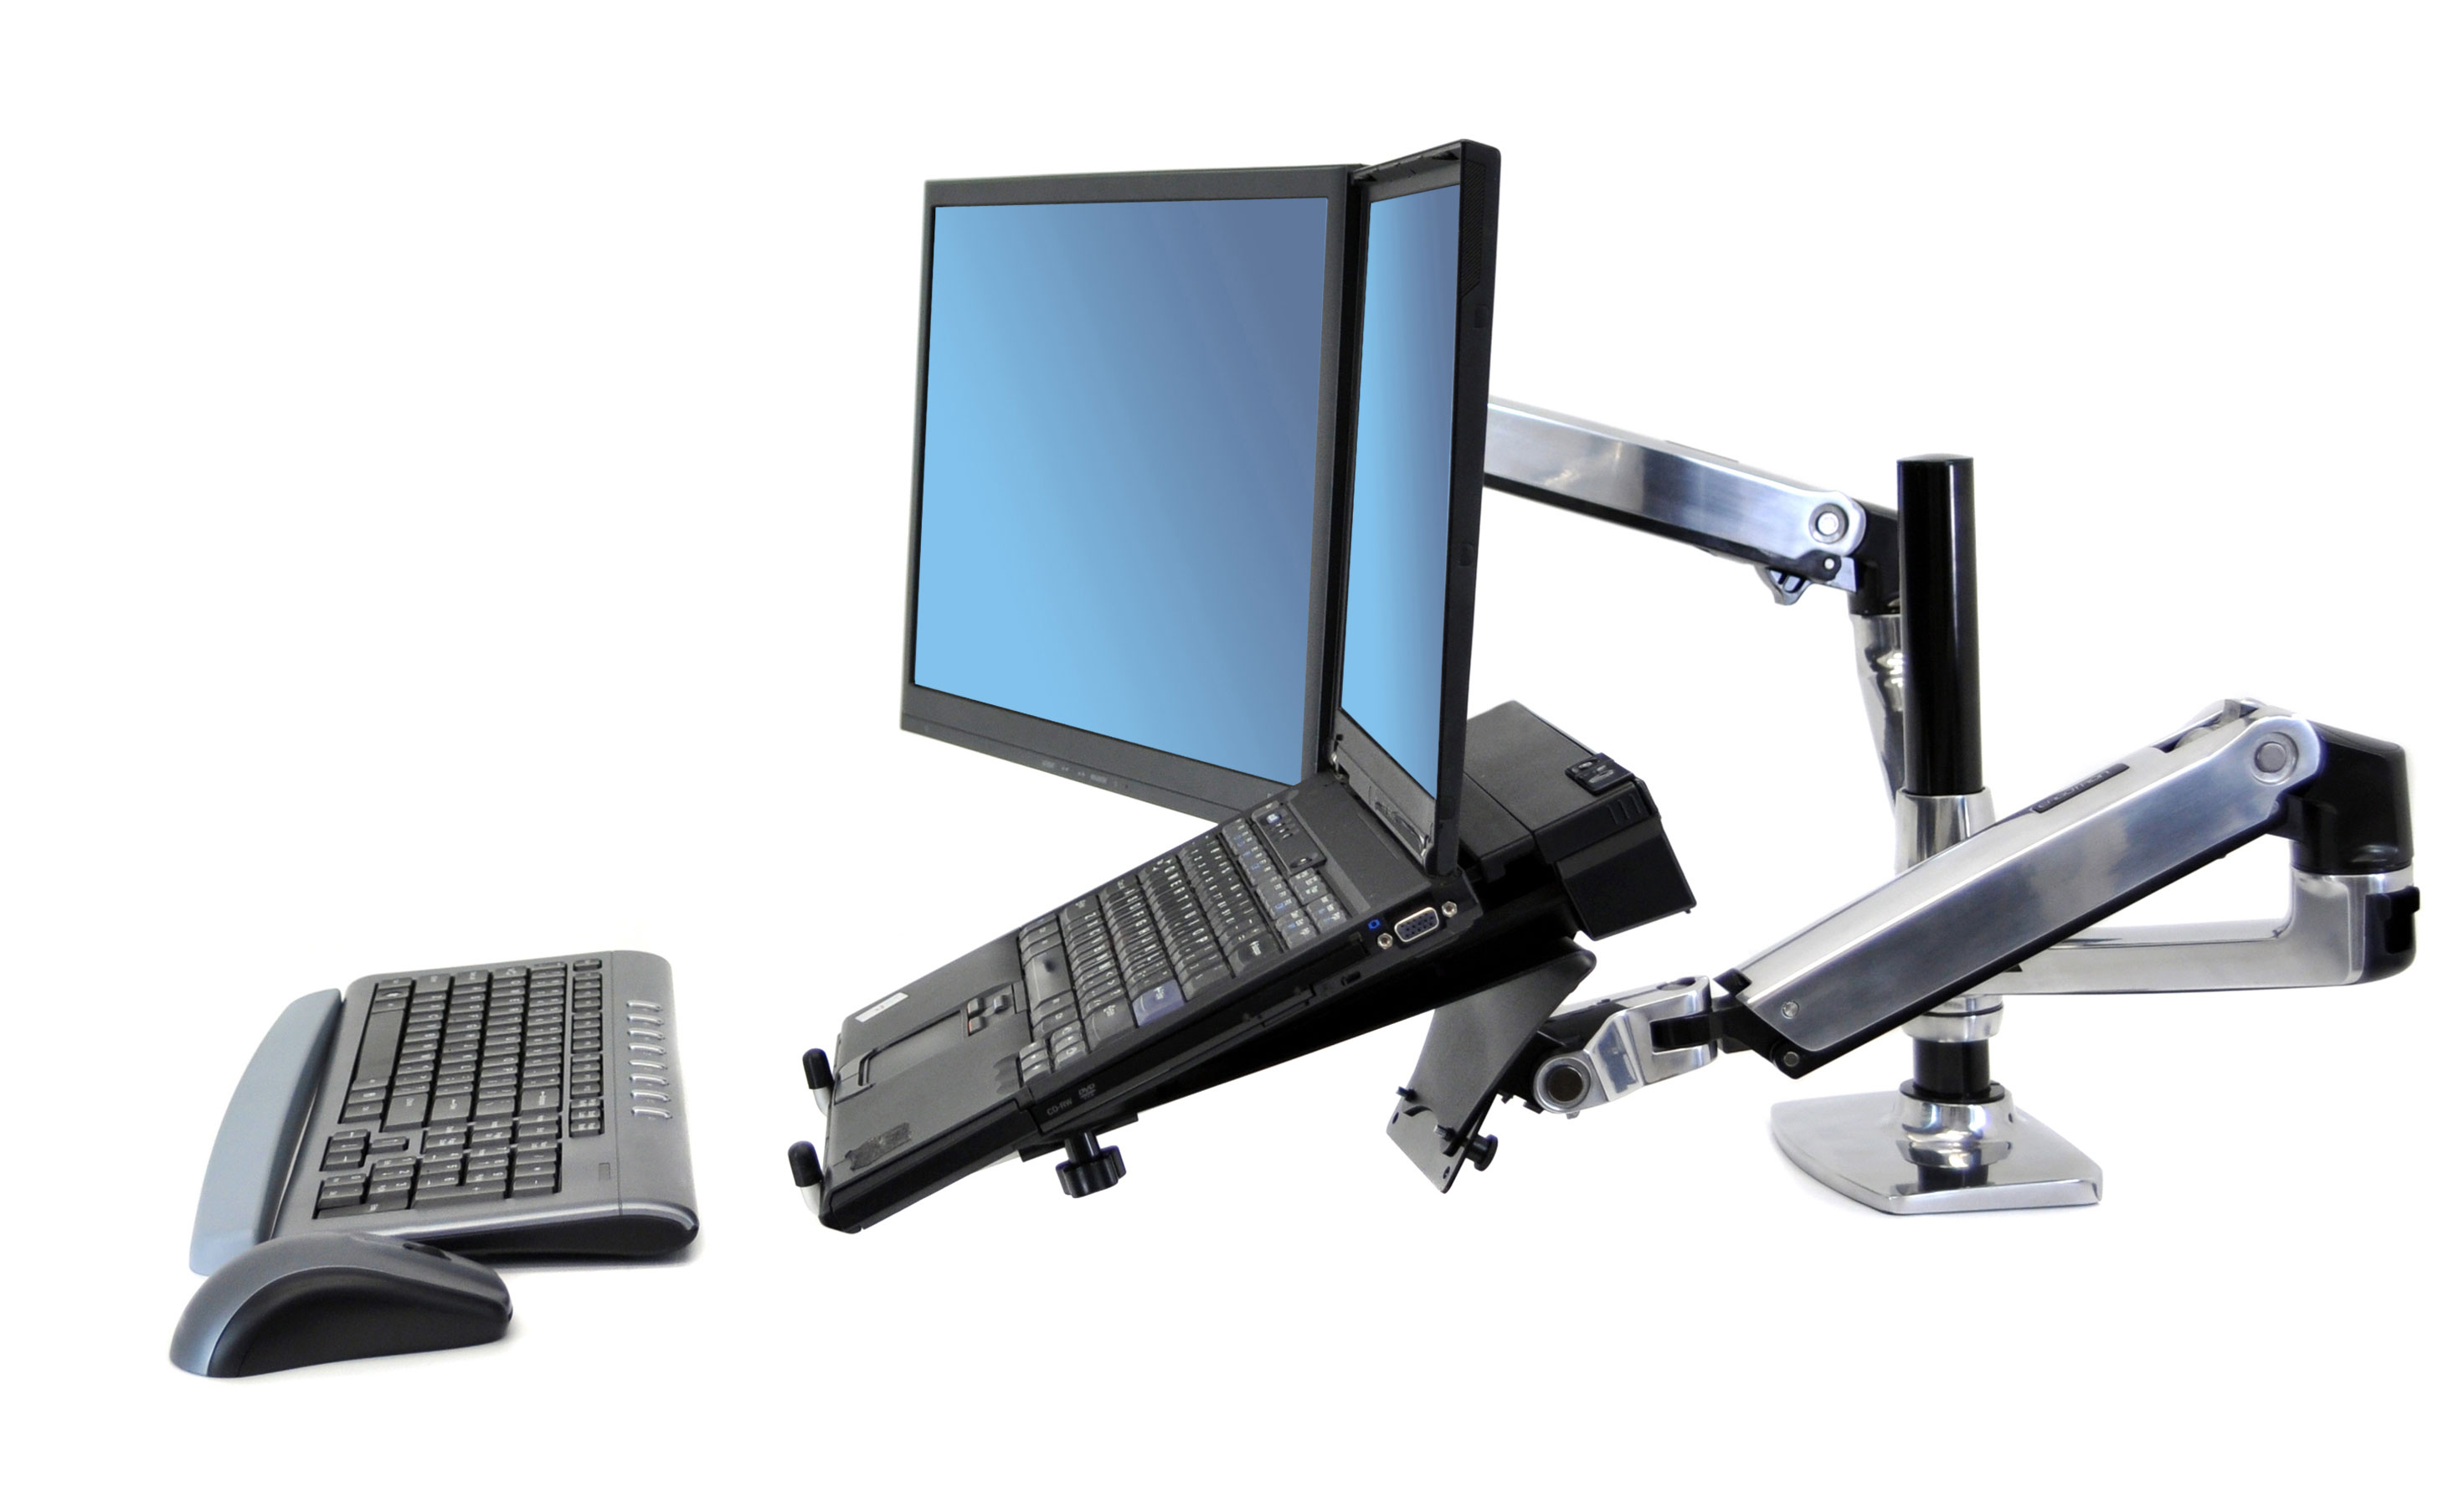 Ergotron LX Dual Stacking Arm - Monitor & Laptop